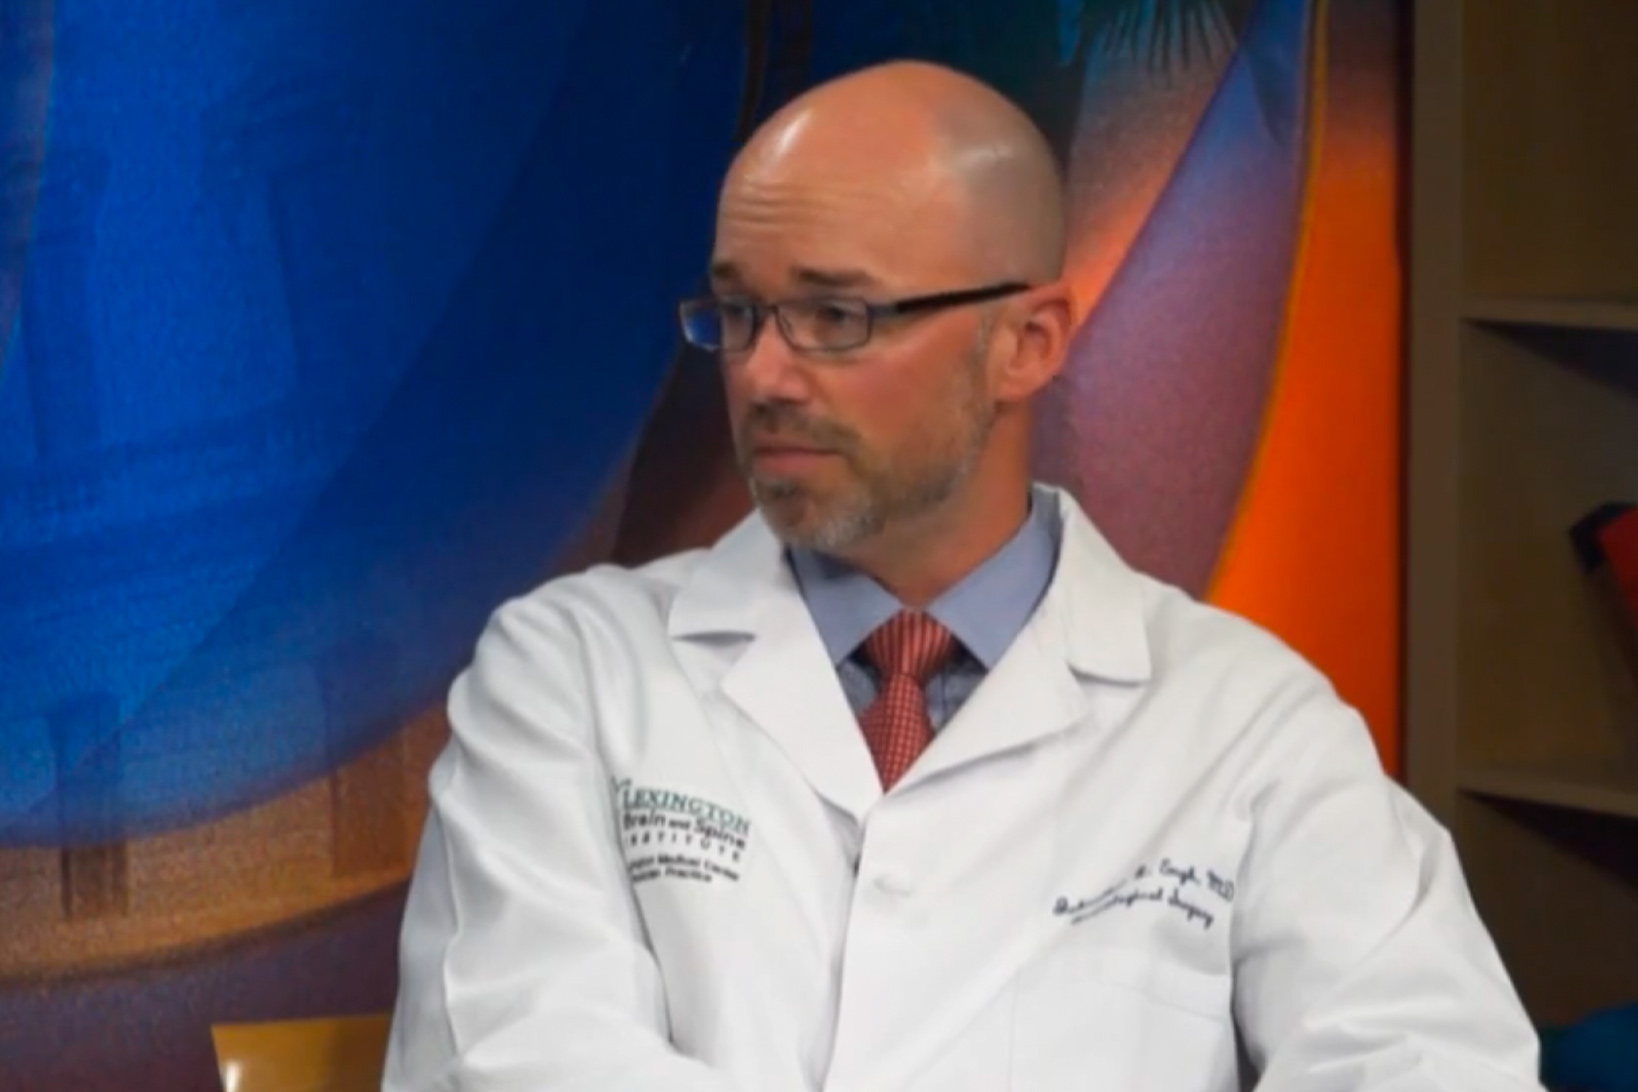 Dr. Johnathan Engh, during an interview on the set of WLTX news.